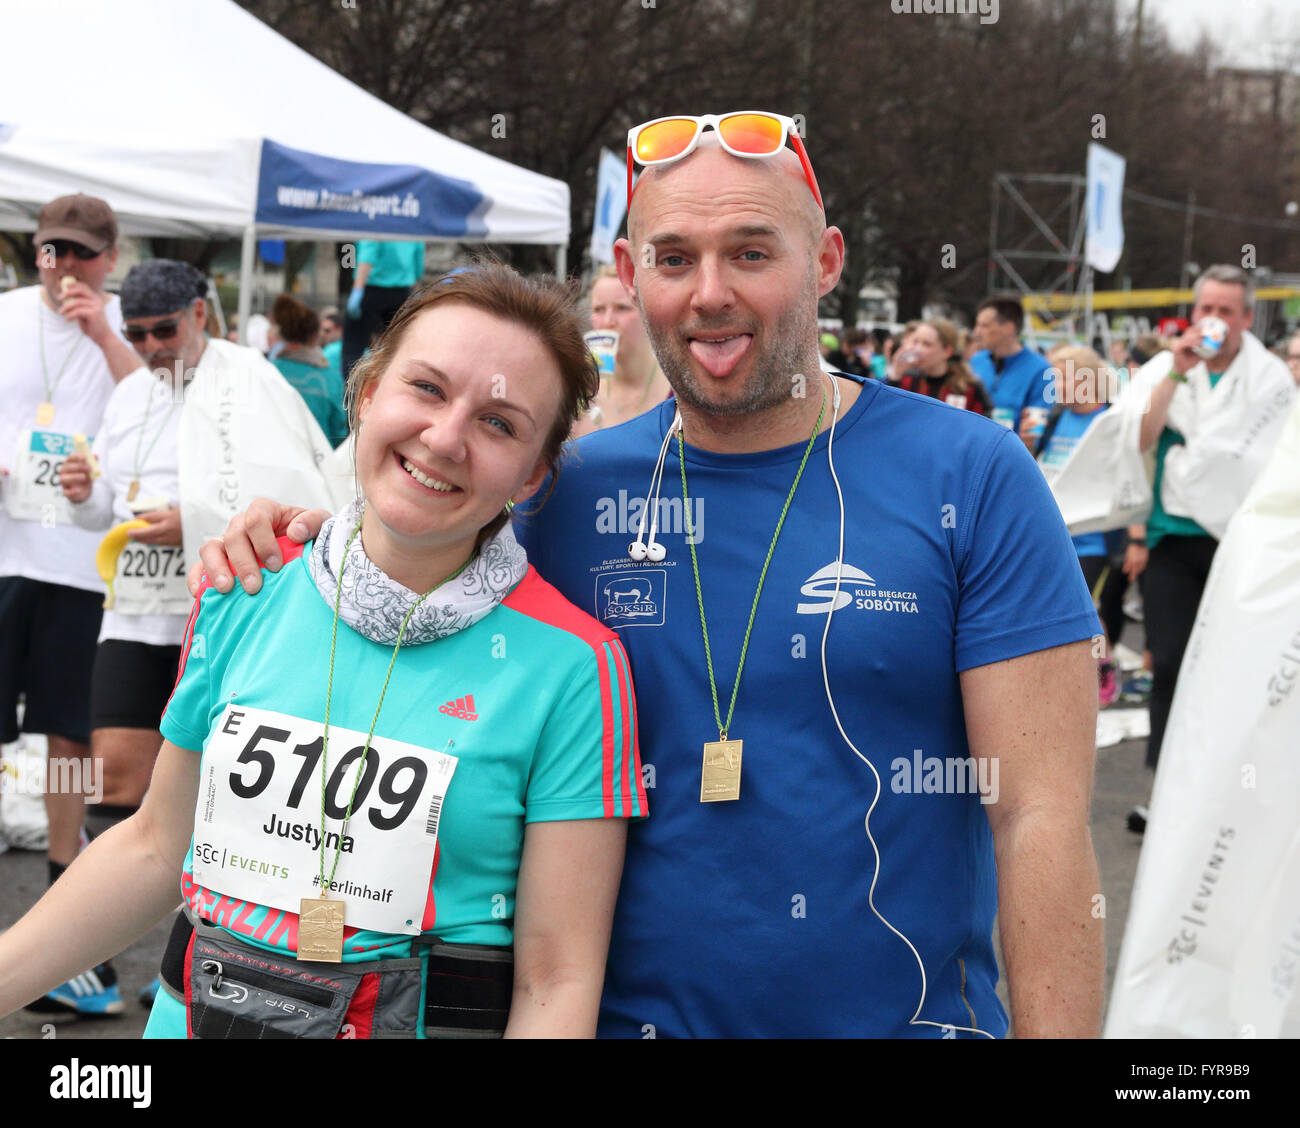 Man and woman wearing their medals after finishing the Berlin Half Marathon - Stock Image